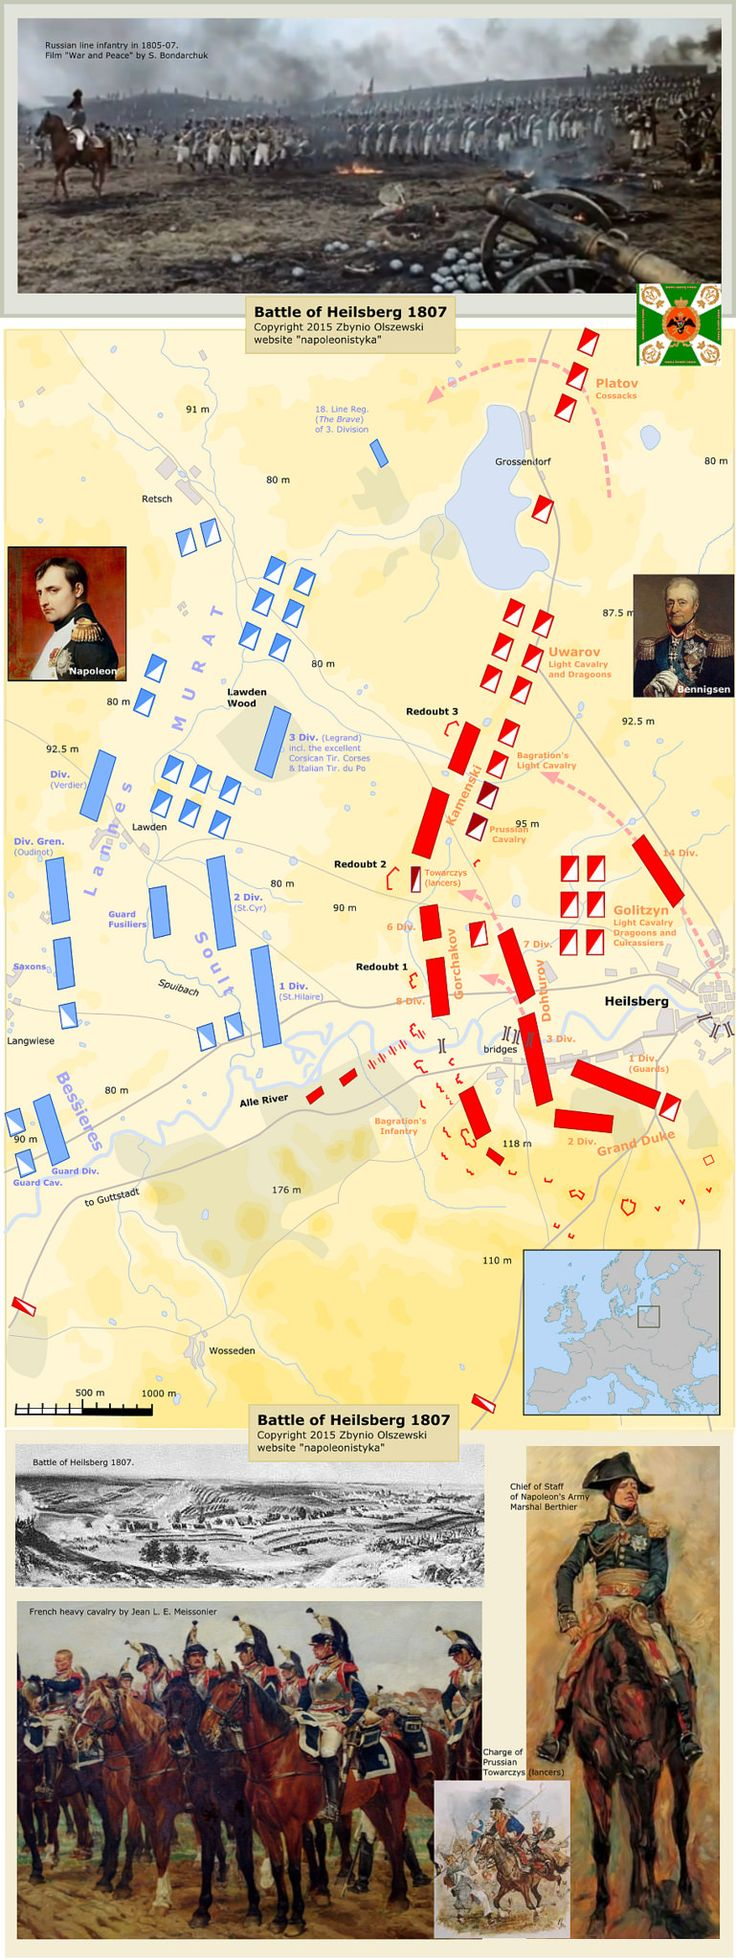 Article and more maps here: mapswar2.x10host.com/Battle_of_Heilsberg_1807.htm